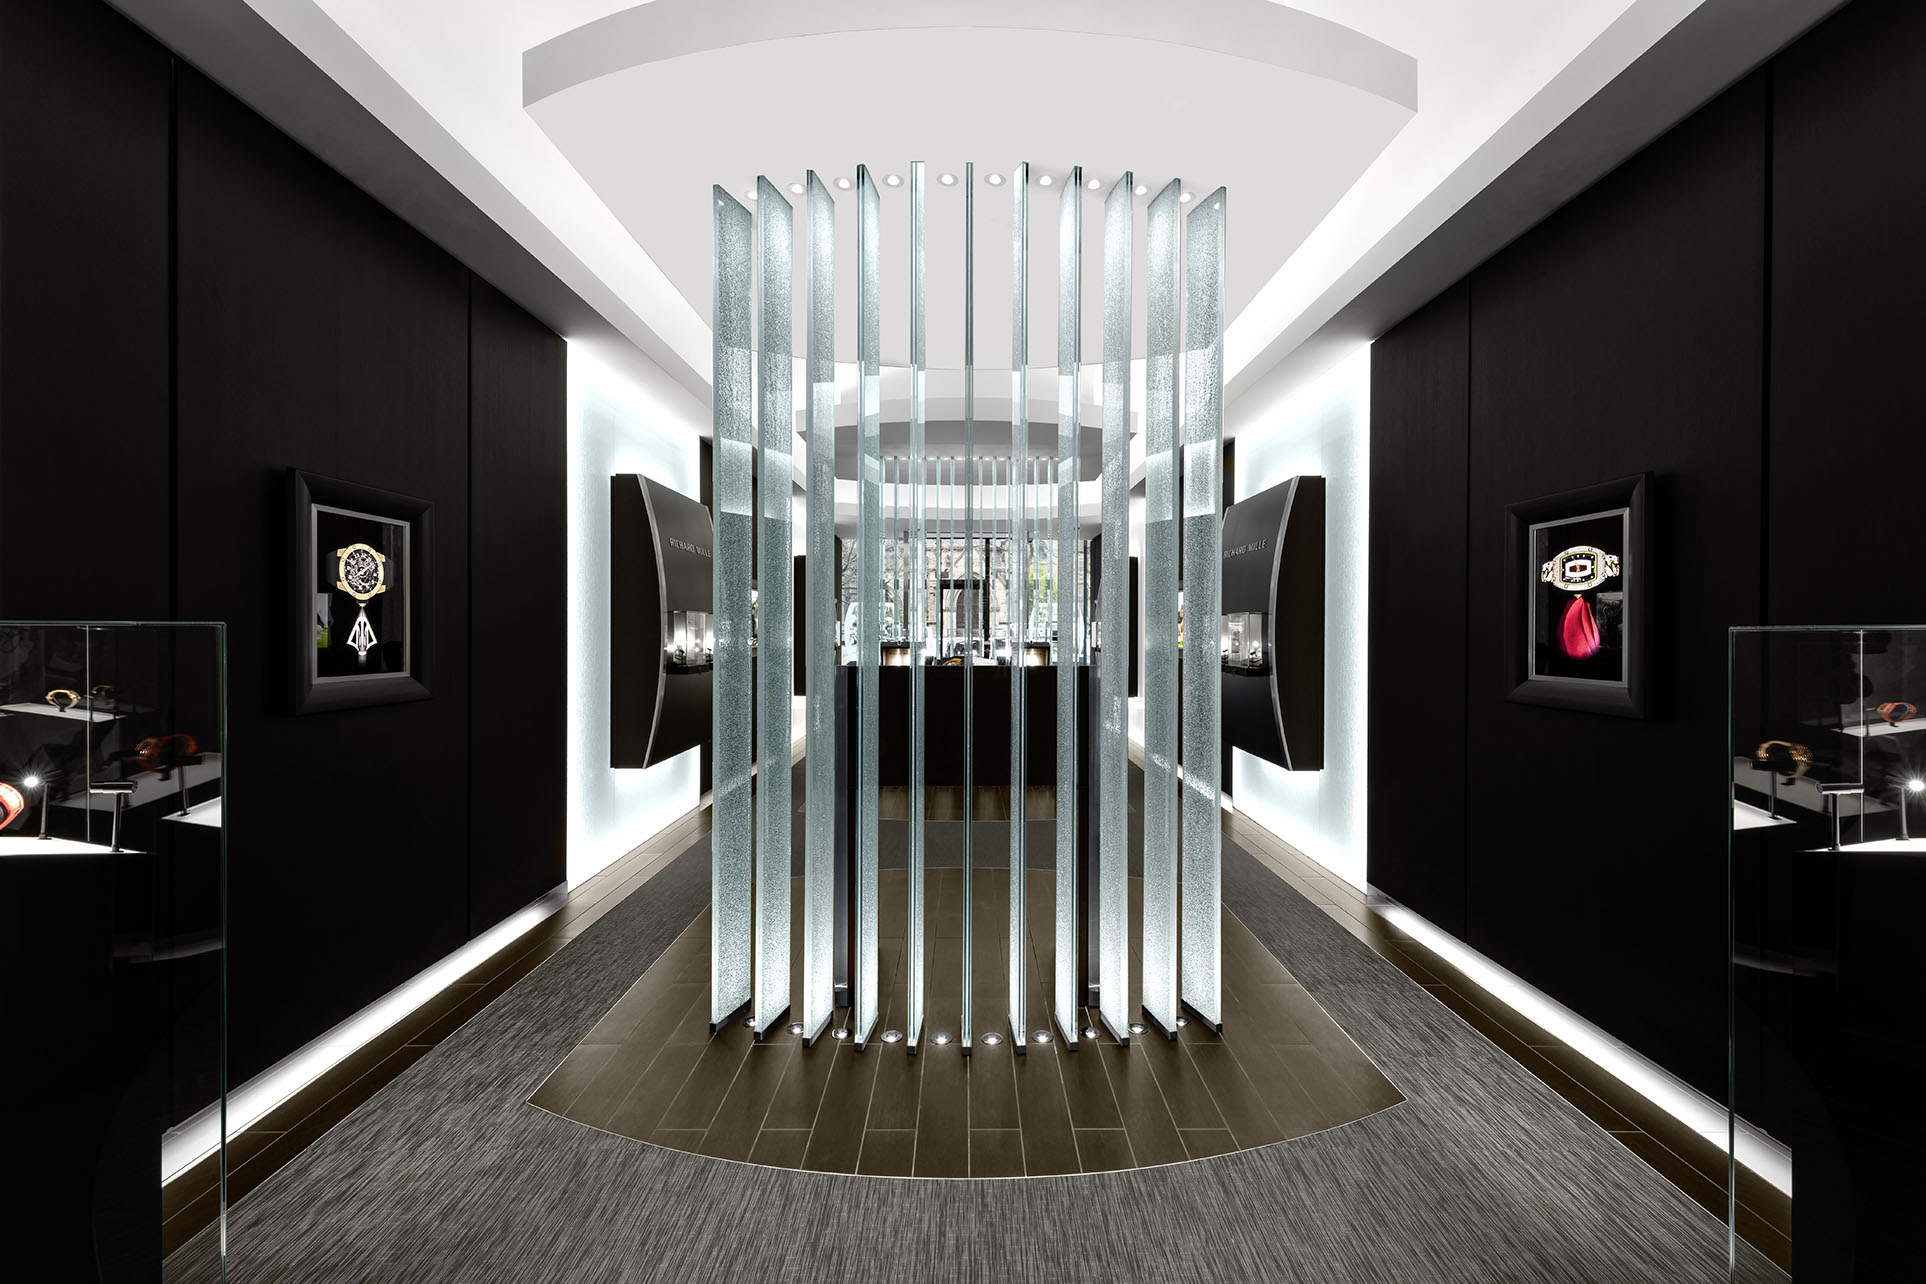 Richard Mille store interior